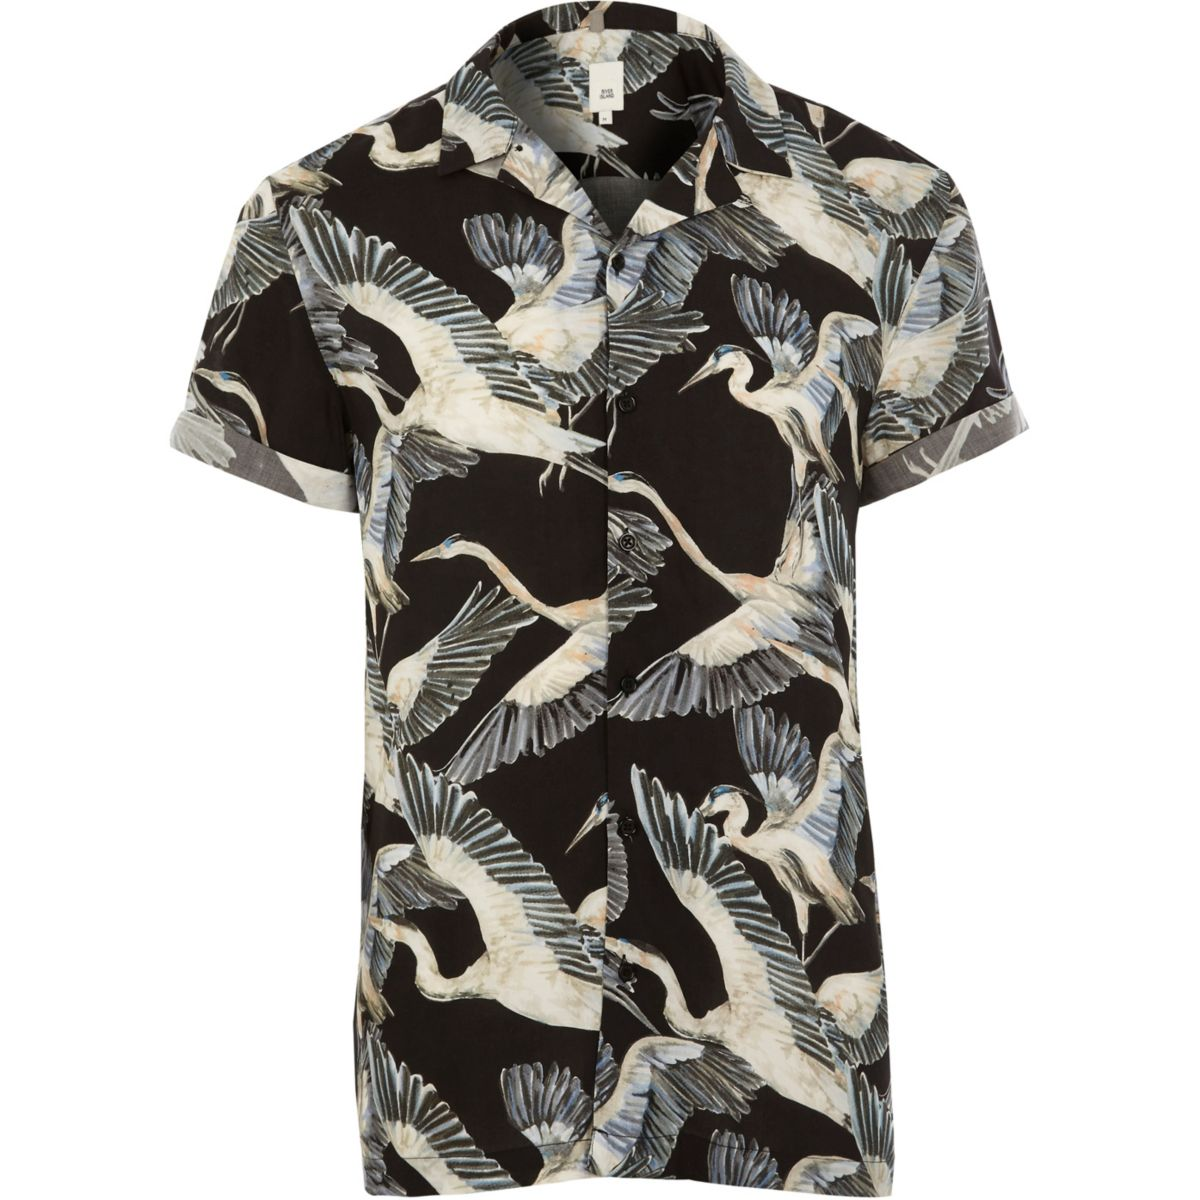 Black bird print short sleeve shirt